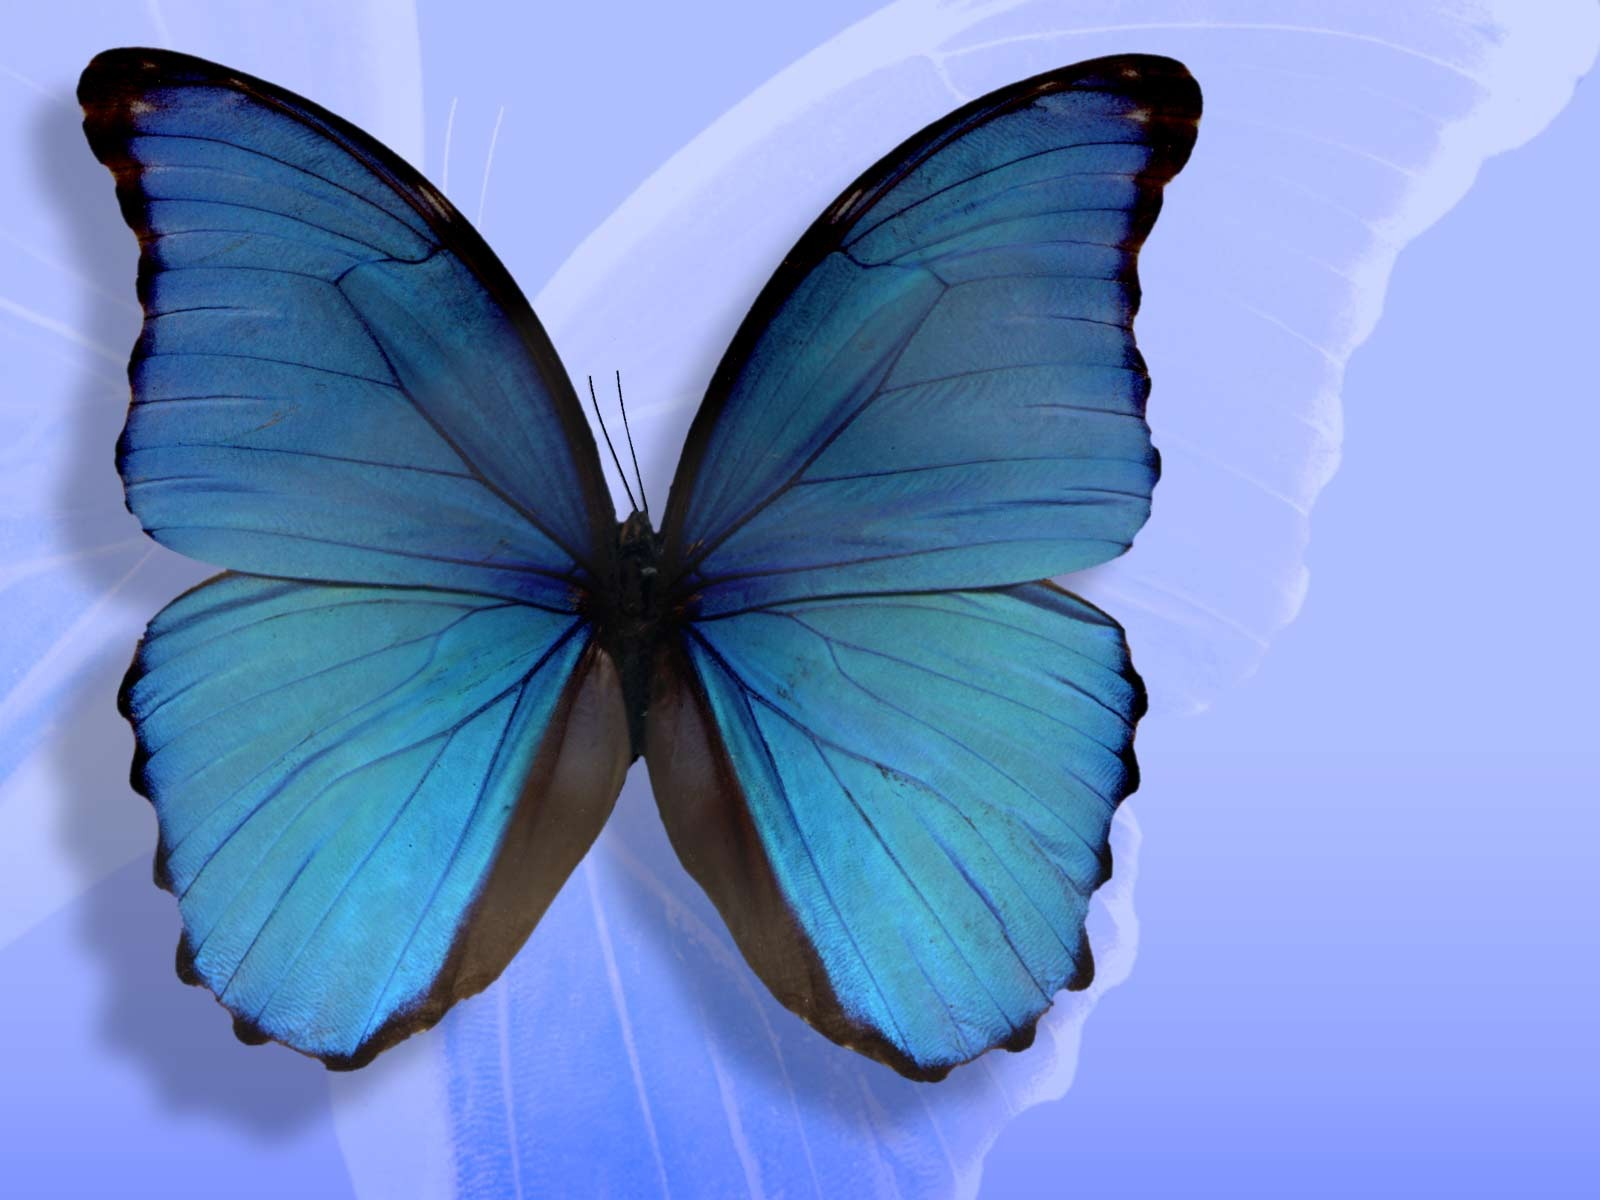 HD Butterfly Wallpapers For Desktop High Definition 1600x1200